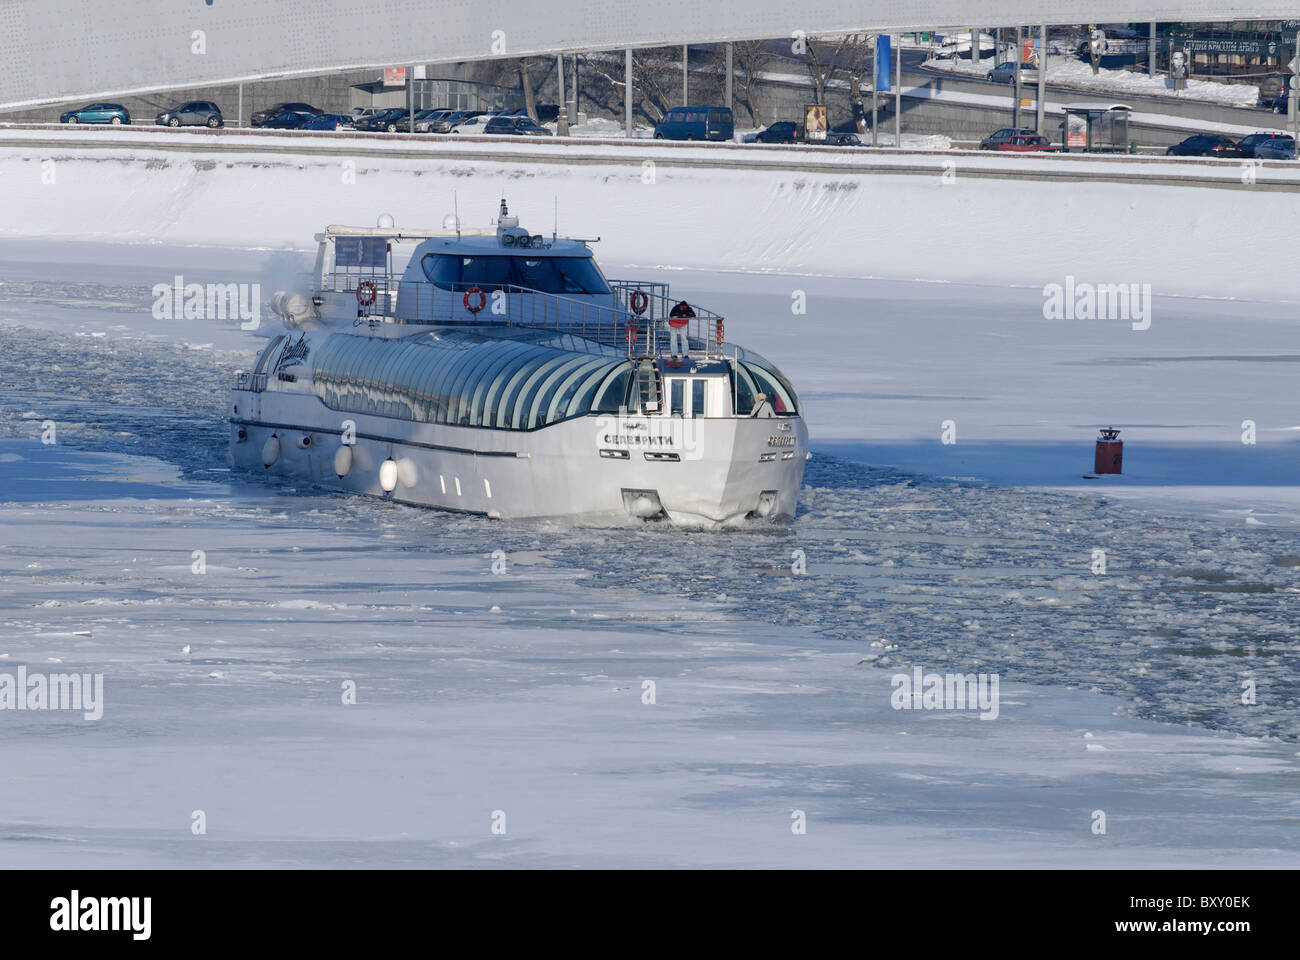 Cruising launch floating on the ice-covered Moscow-river - Stock Image